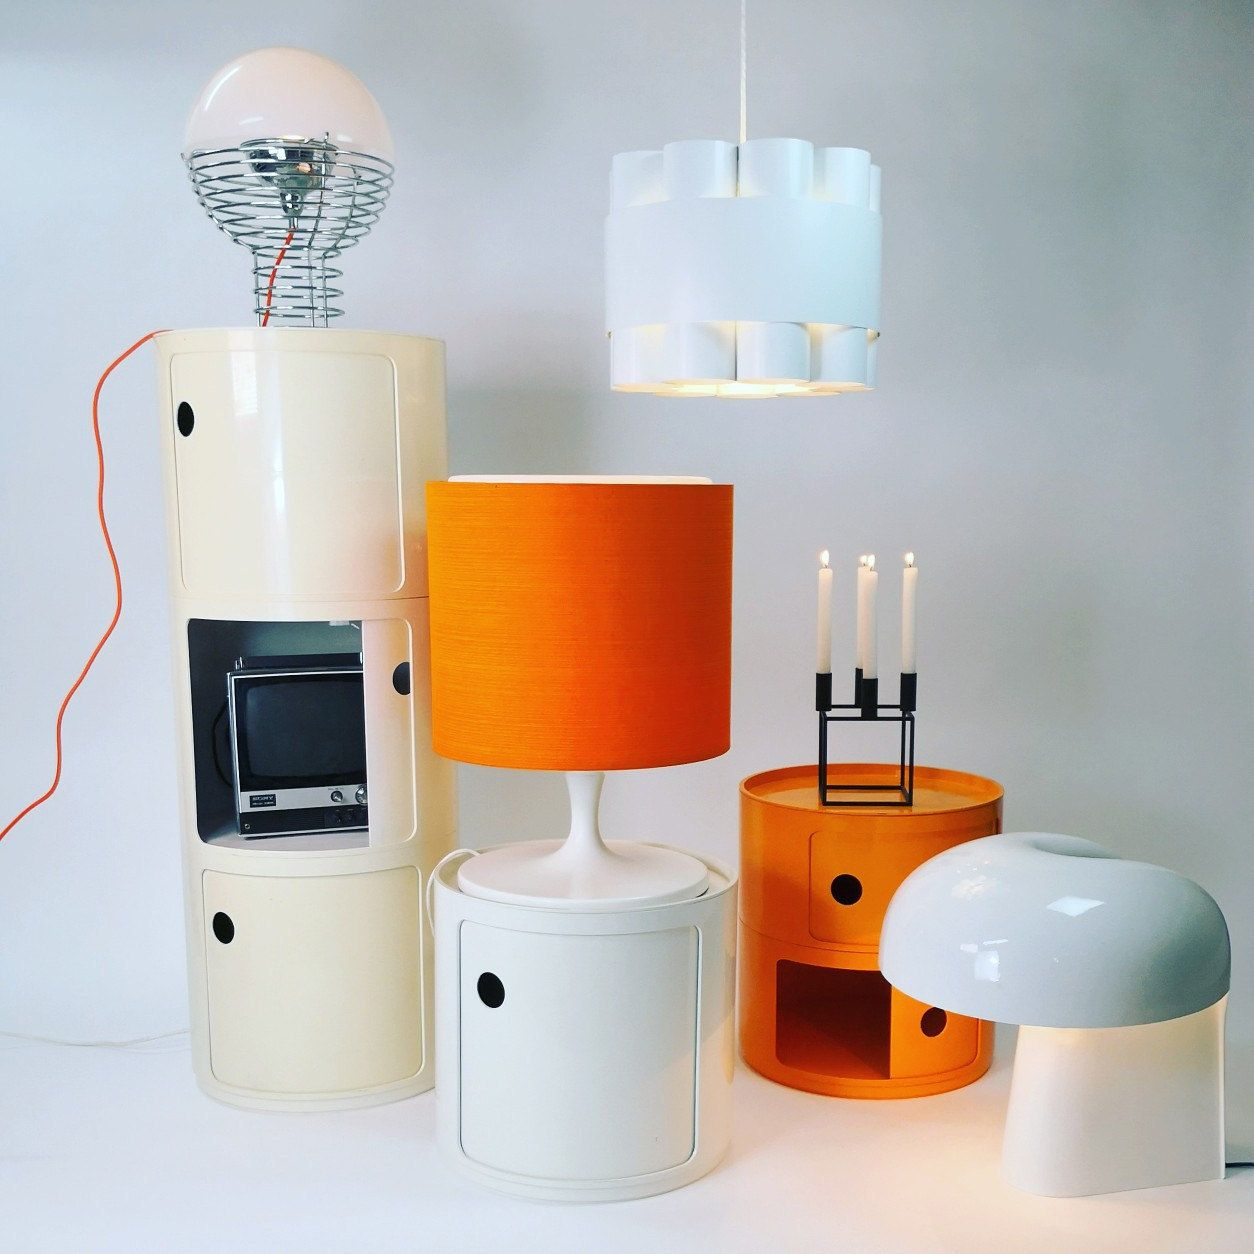 Rare And Unique Table Lamp By Gerd Lange For Fehlbaum Germany Etsy Unique Table Lamps Design Minimalist Furniture